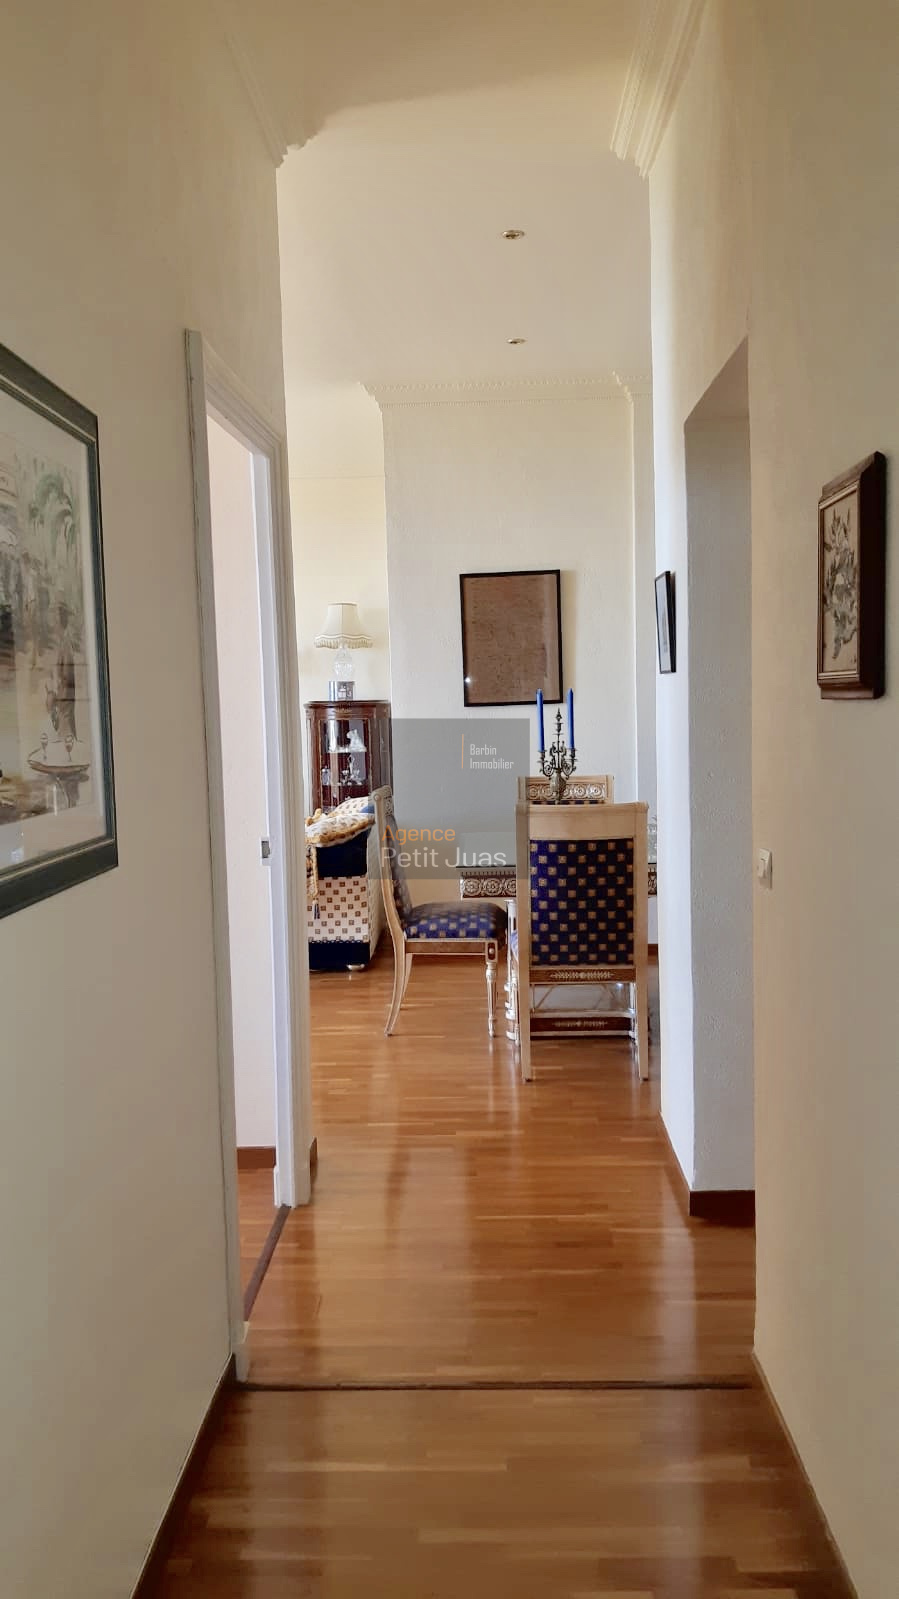 Image_8, Appartement, Cannes, ref :745SY